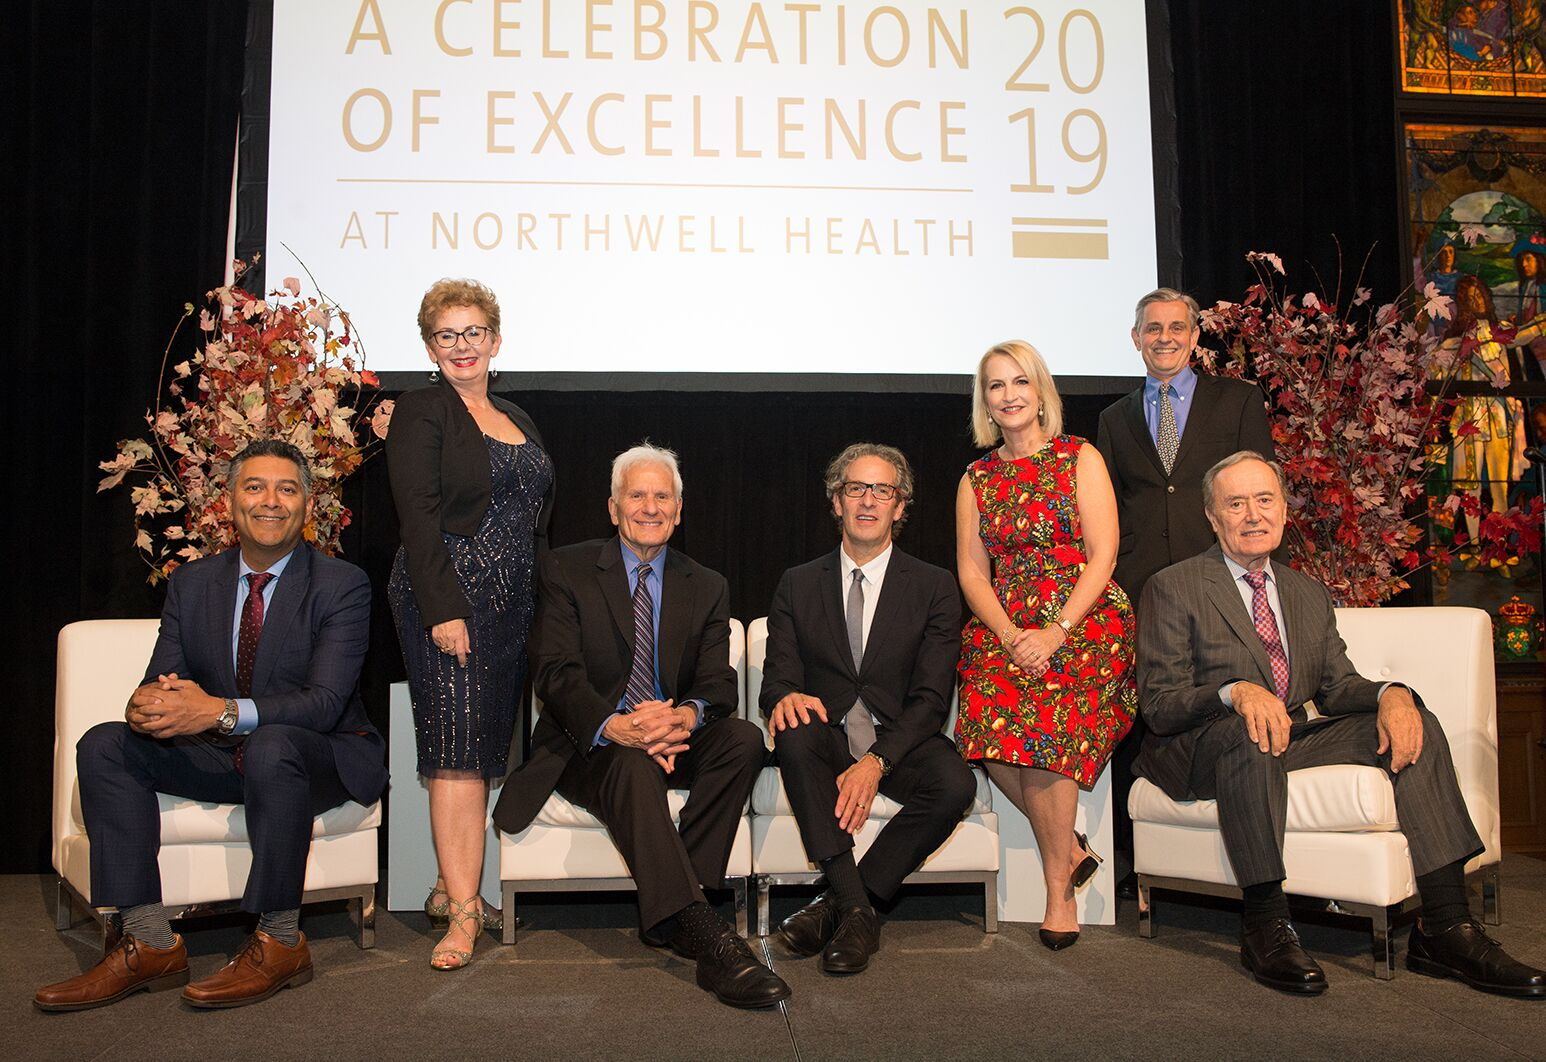 From left: Northwell Health's newly endowed professors and chairs: Varinder P. Singh, MD; Karina W. Davidson, PhD, MASc; Jeffrey M. Lipton, MD, PhD; Louis Potters, MD; Stacey E. Rosen, MD; Kevin J. Tracey, MD; and Nicholas Chiorazzi, MD.